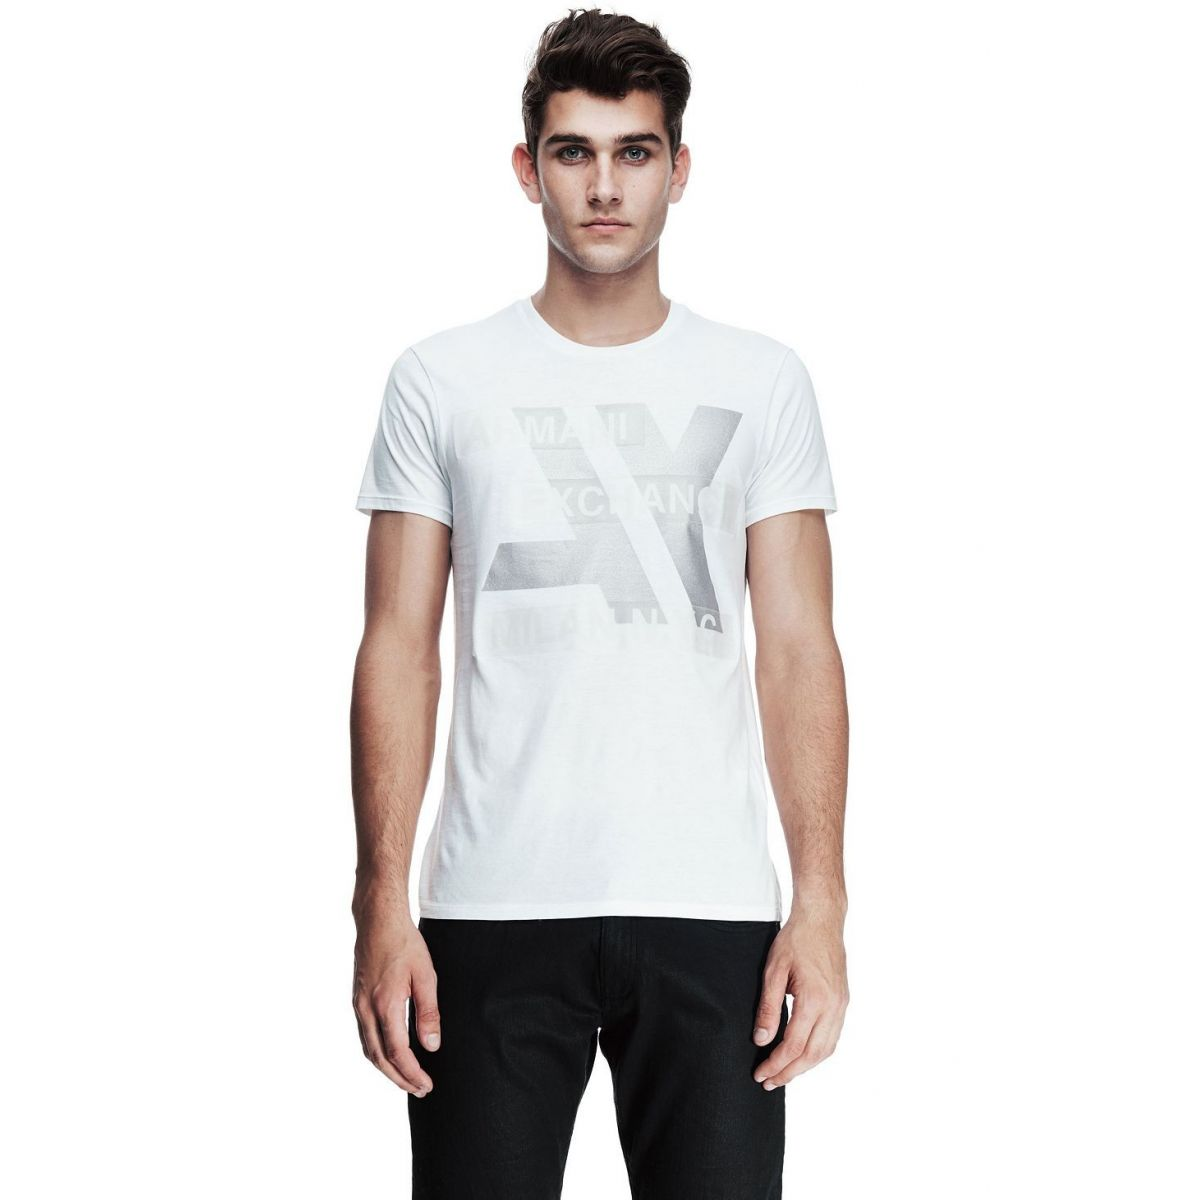 Camiseta Armani Exchange Hi Tech logo Branca